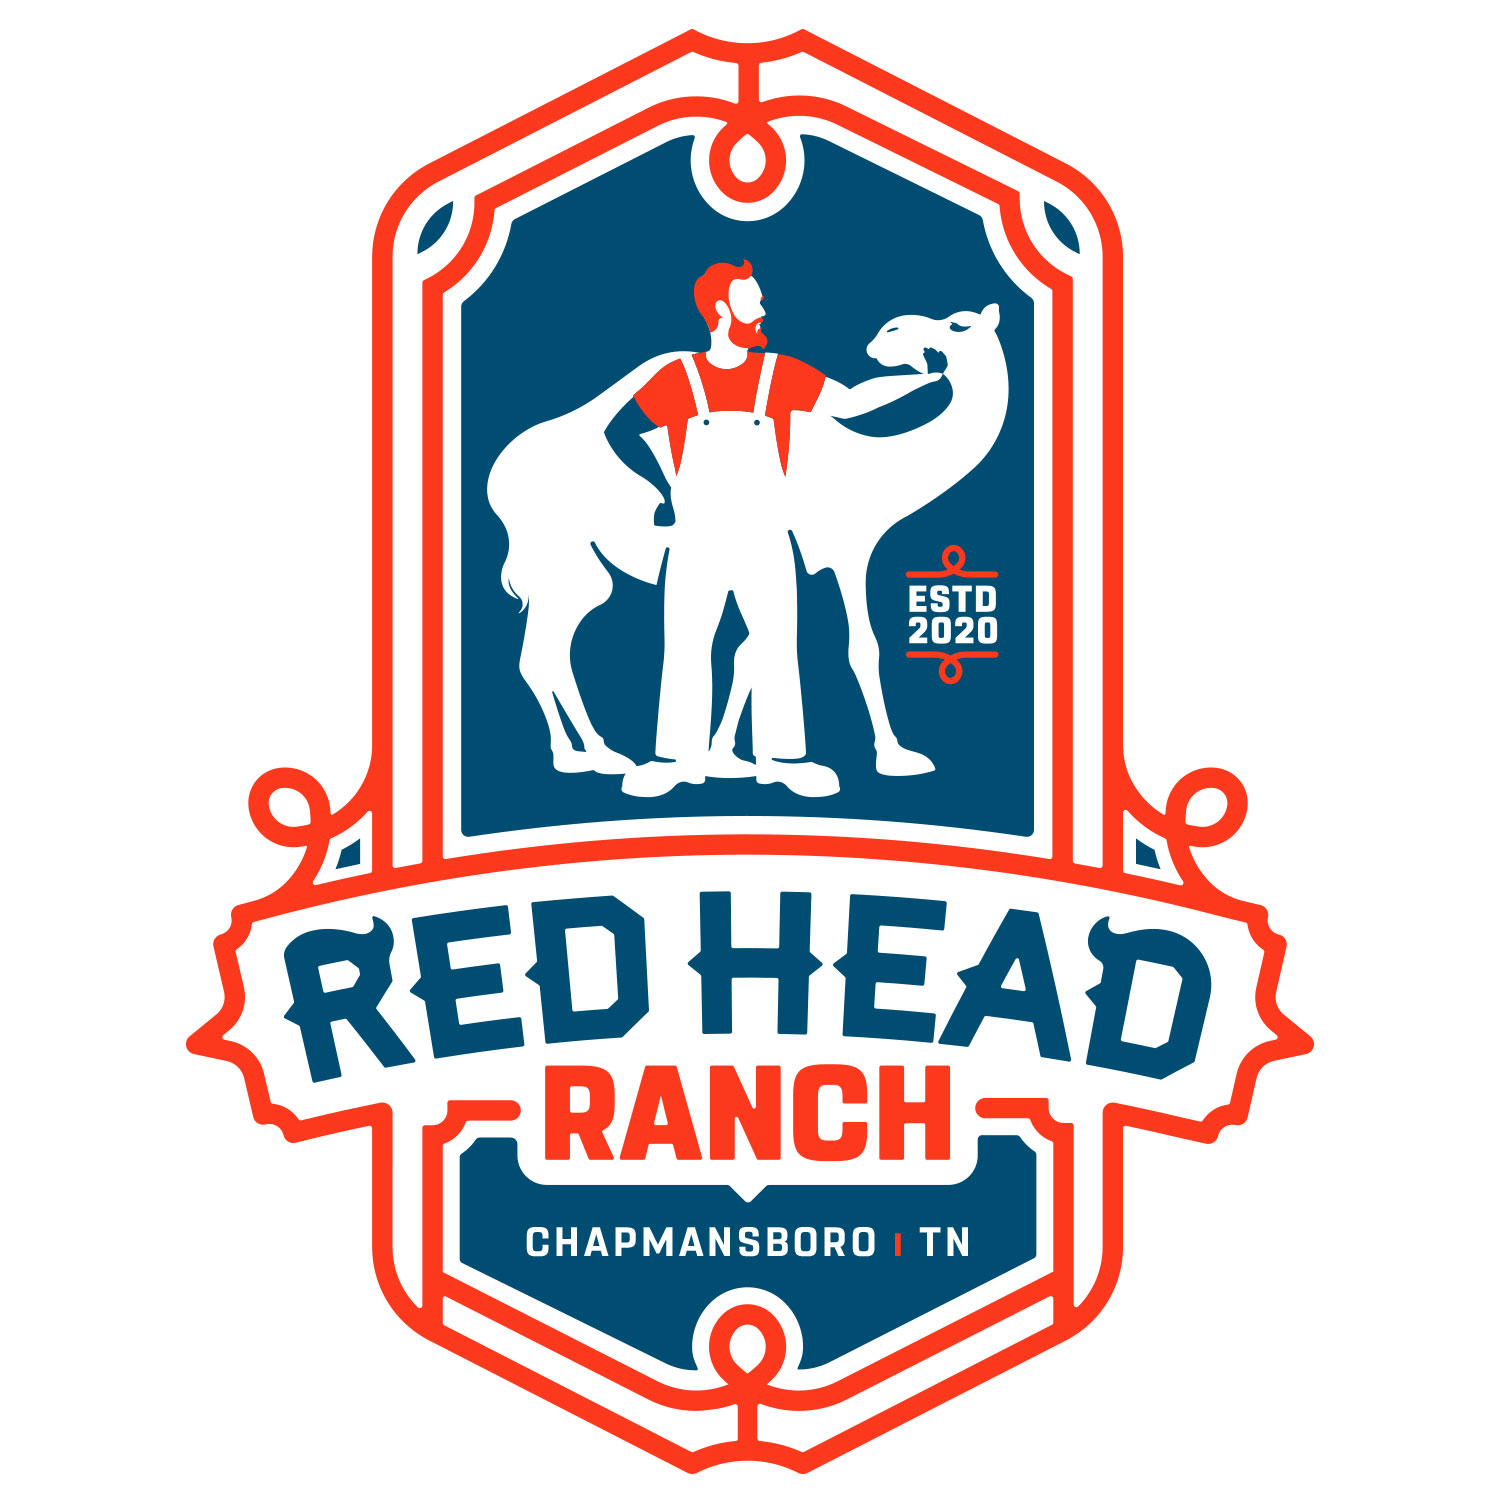 Red Head Ranch